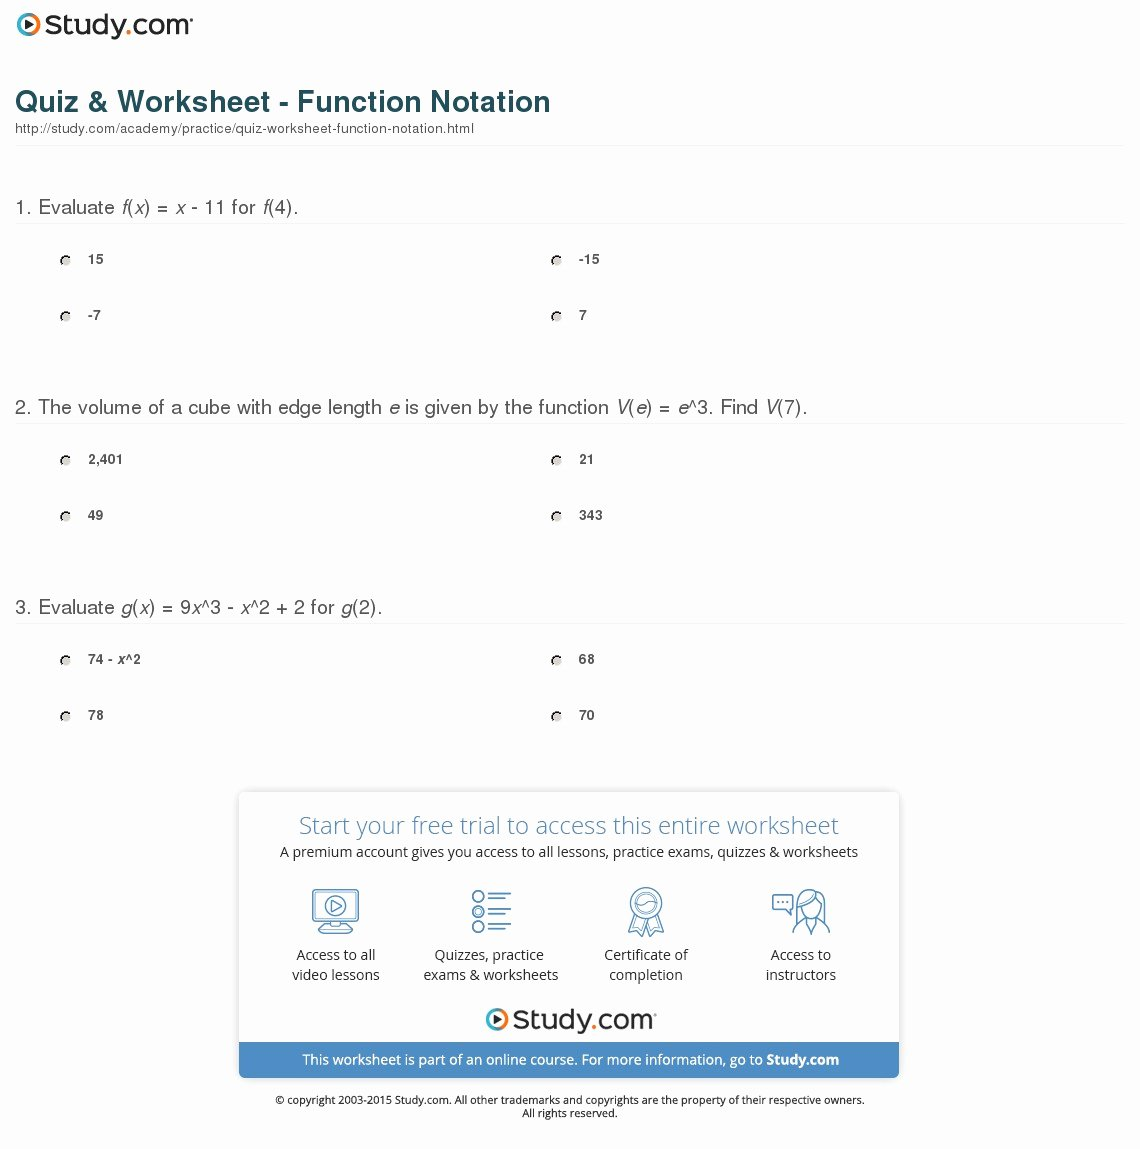 Function Notation Worksheet Answers Awesome Quiz & Worksheet Function Notation